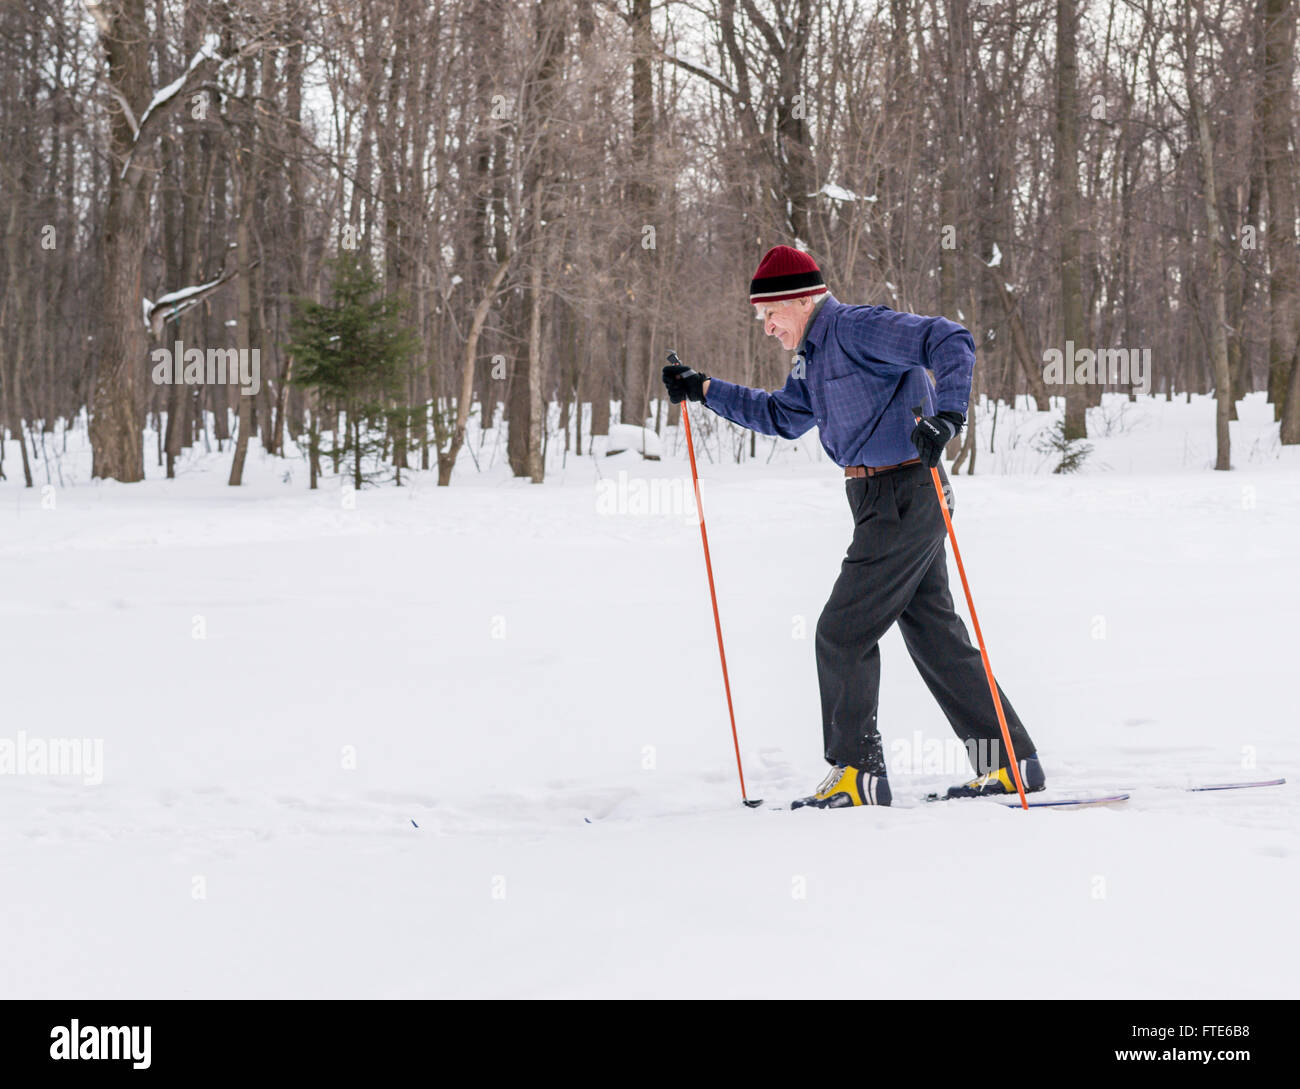 UFA - RUSSIA 22ND FEBRUARY 2016 - An old man exercises to improve his health by cross country skiing in a public - Stock Image